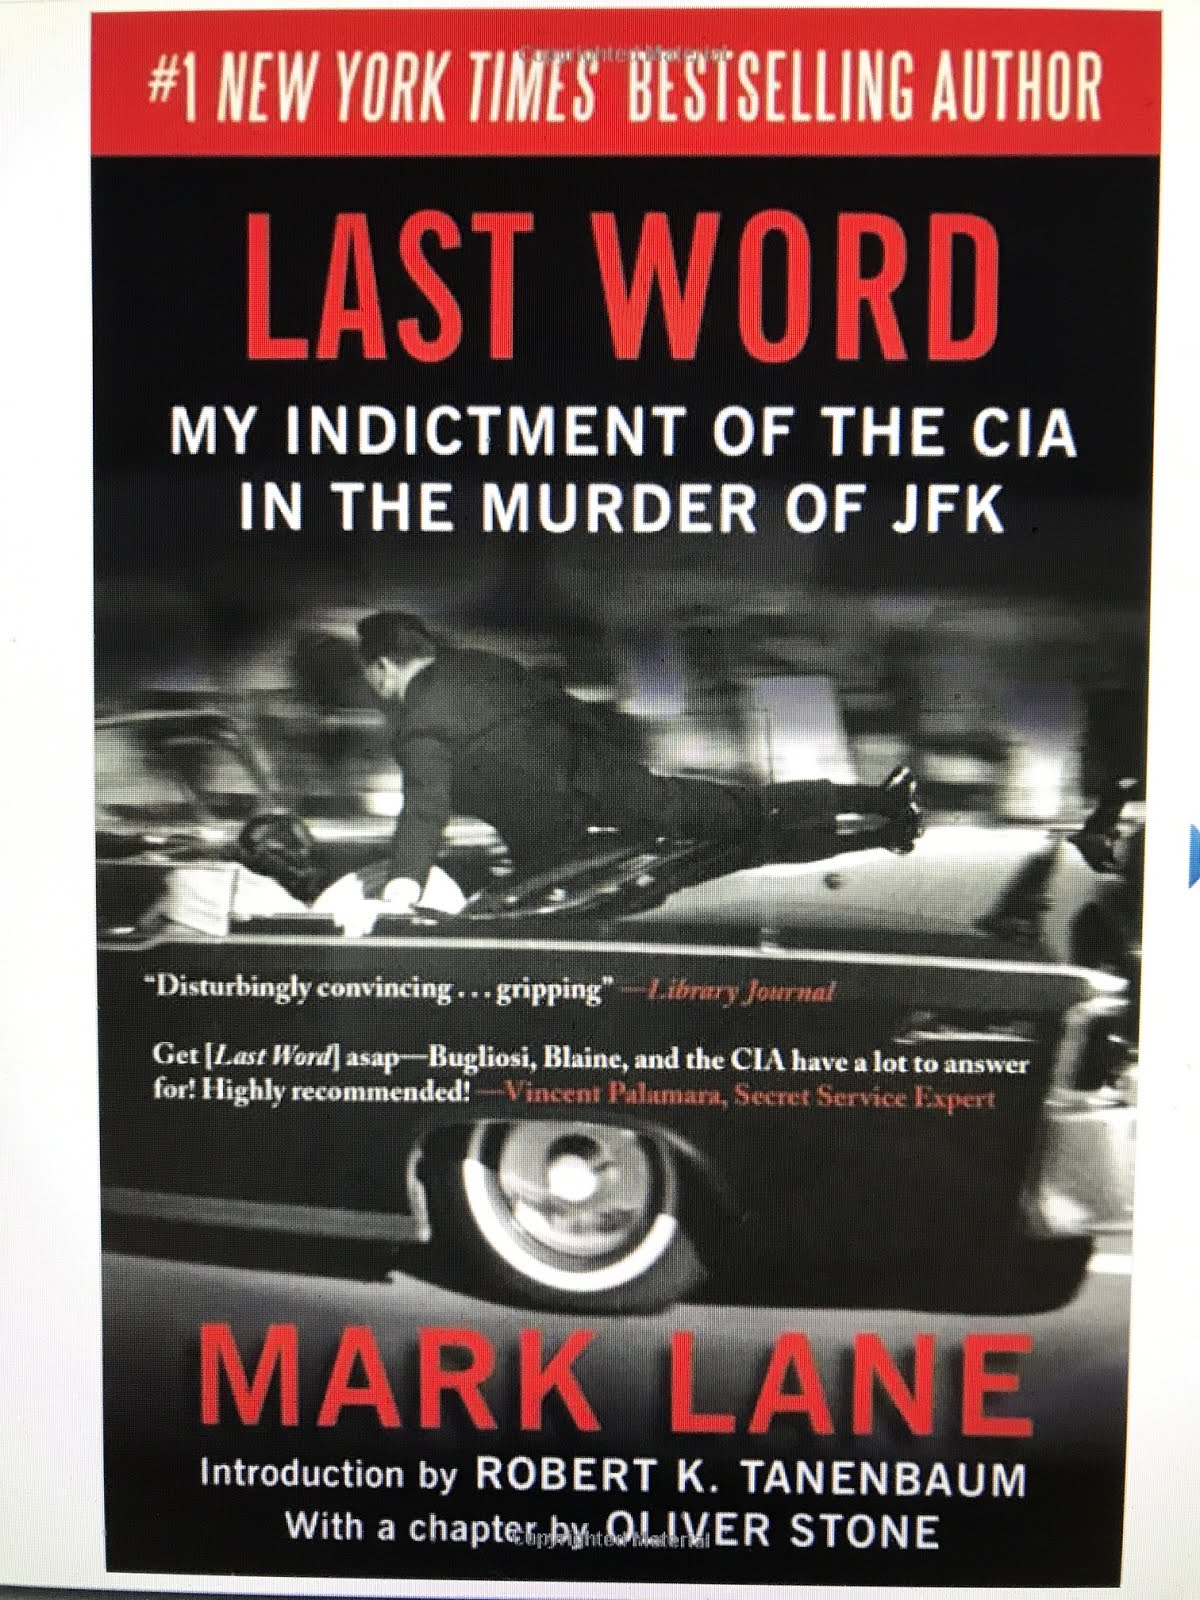 DEBUNKS BUGLIOSI, BLAINE & THE CIA!